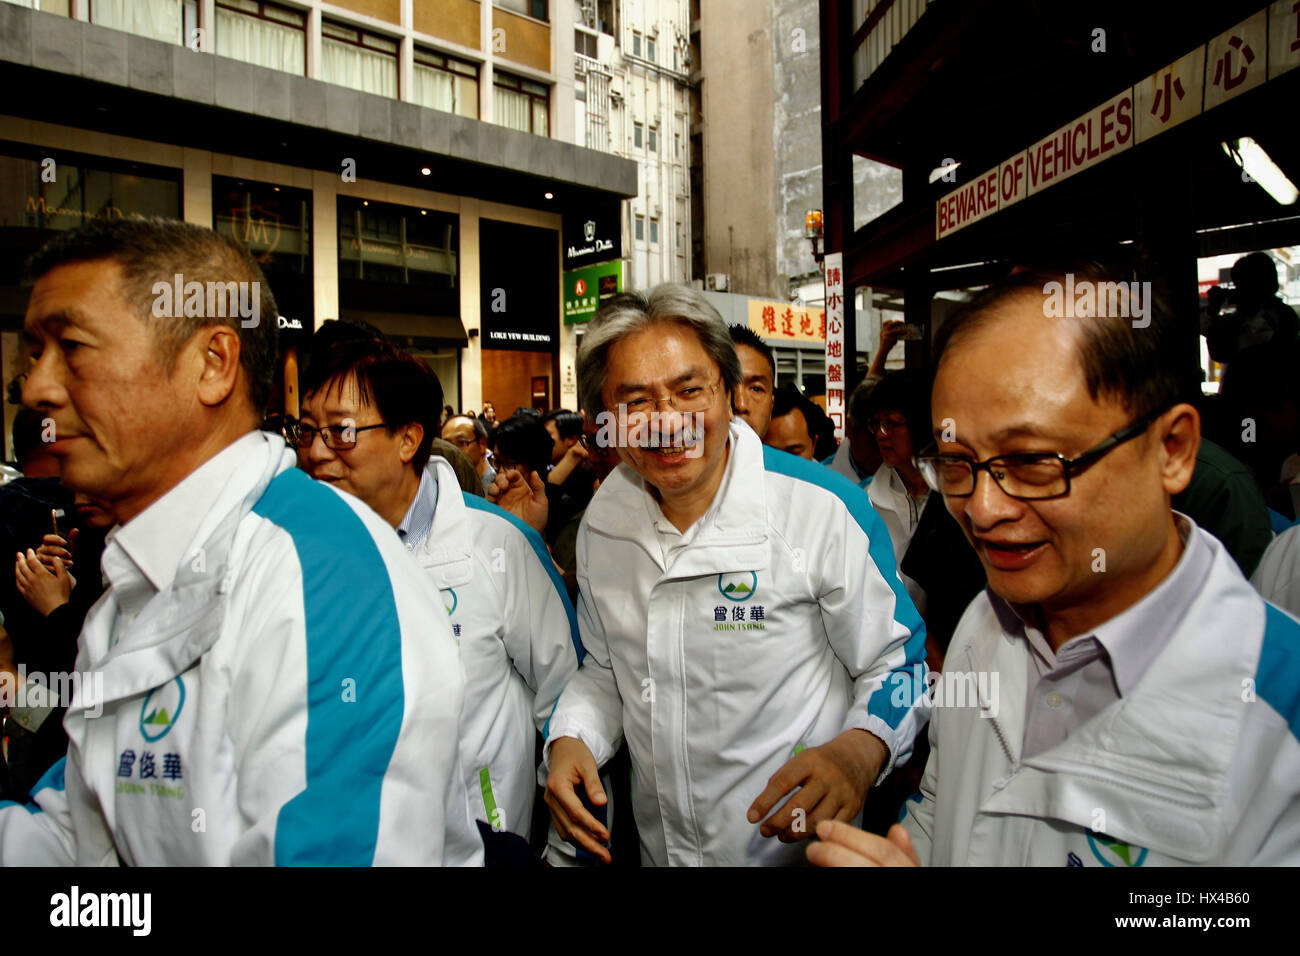 John Tsang, a former HKSAR Financial Secretary and the most popular candidate for 2017 HKSAR Chief Executive Election - Stock Image